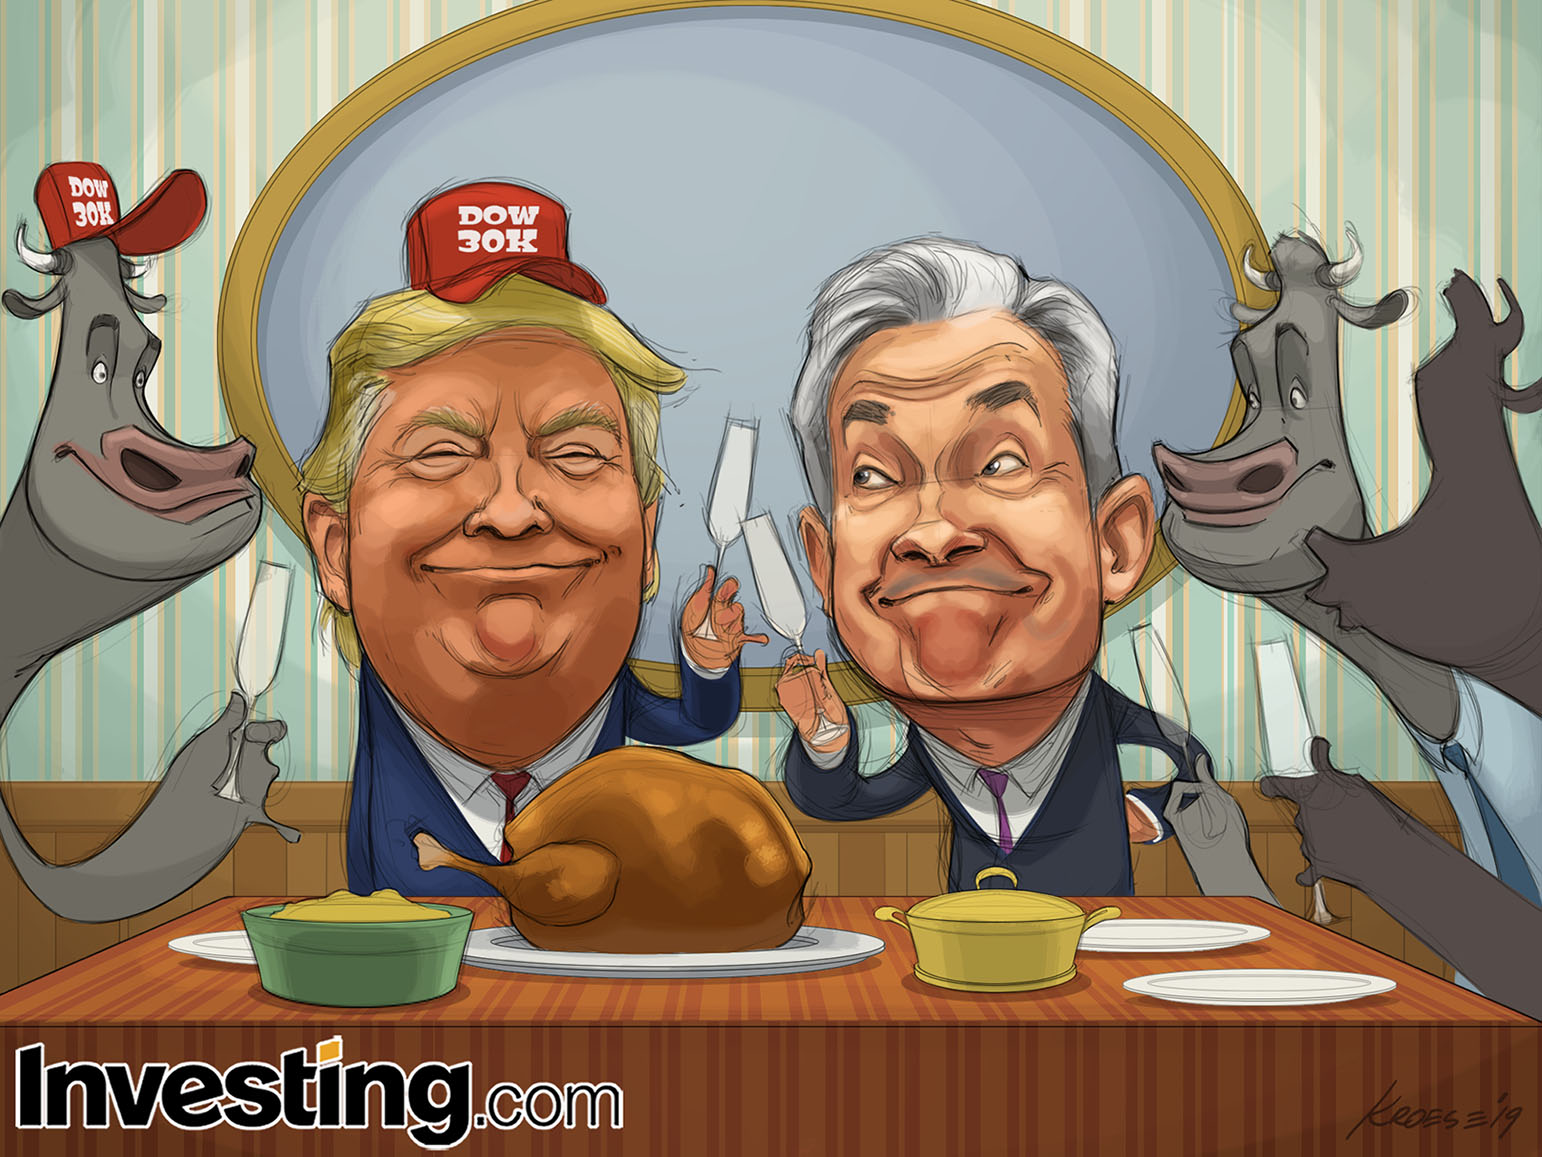 Stock Market At All-Time Highs Has The Bulls (And Trump) In A Festive Thanksgiving Mood